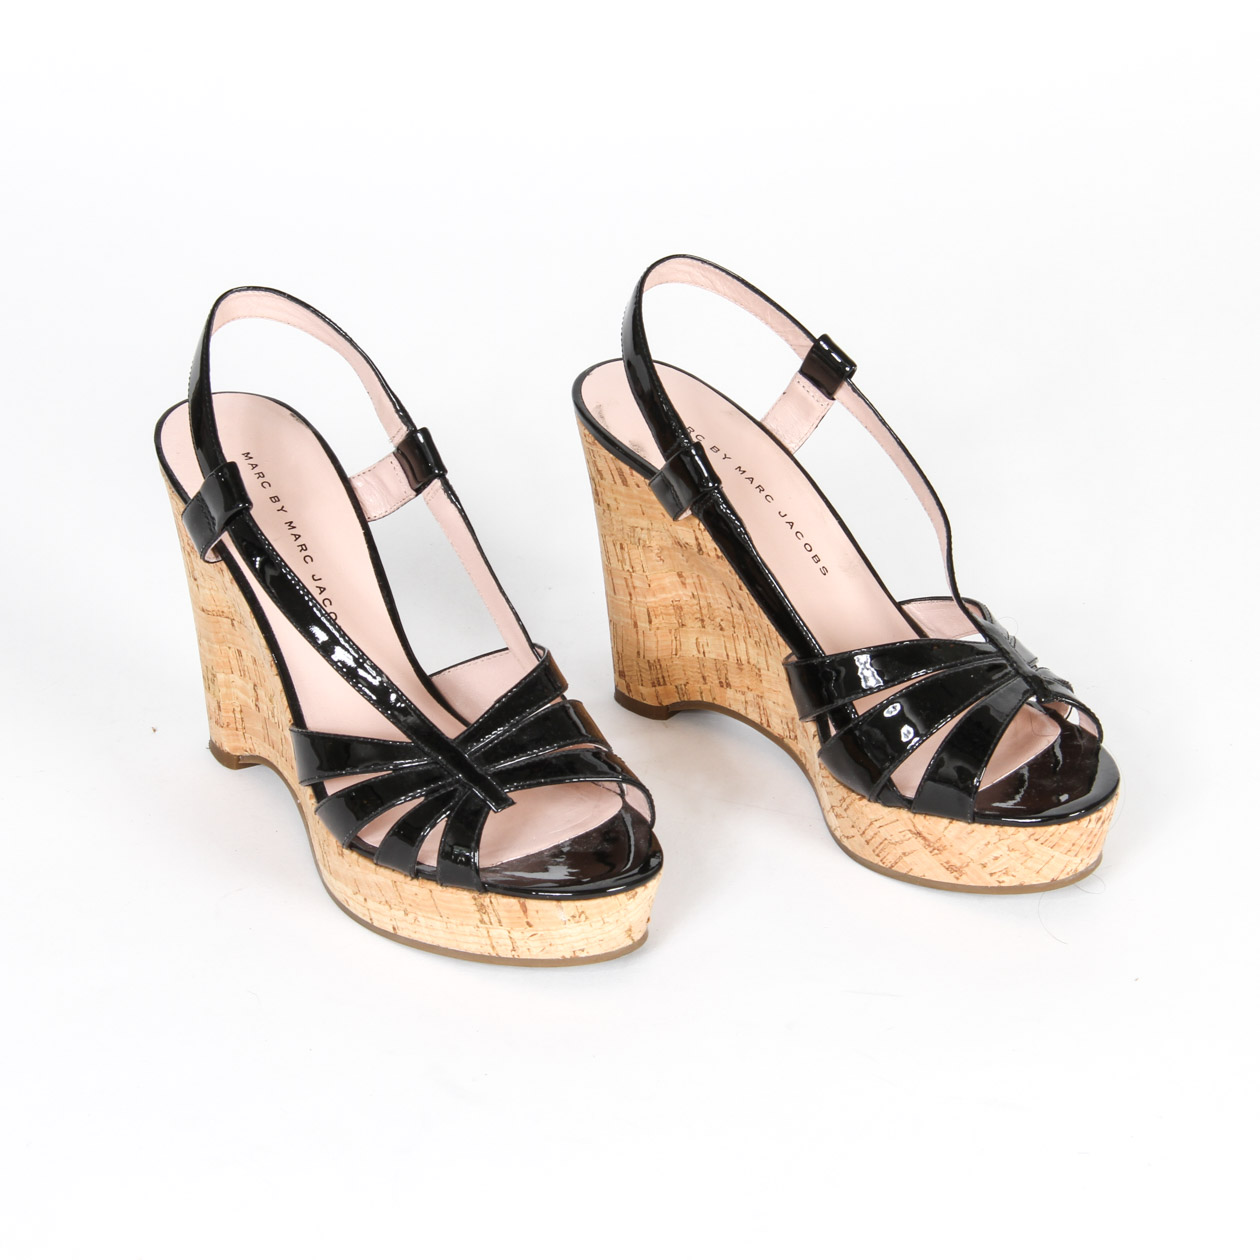 Patent Leather Sandals Jacobs By Wedge Marc SpqVGMUz